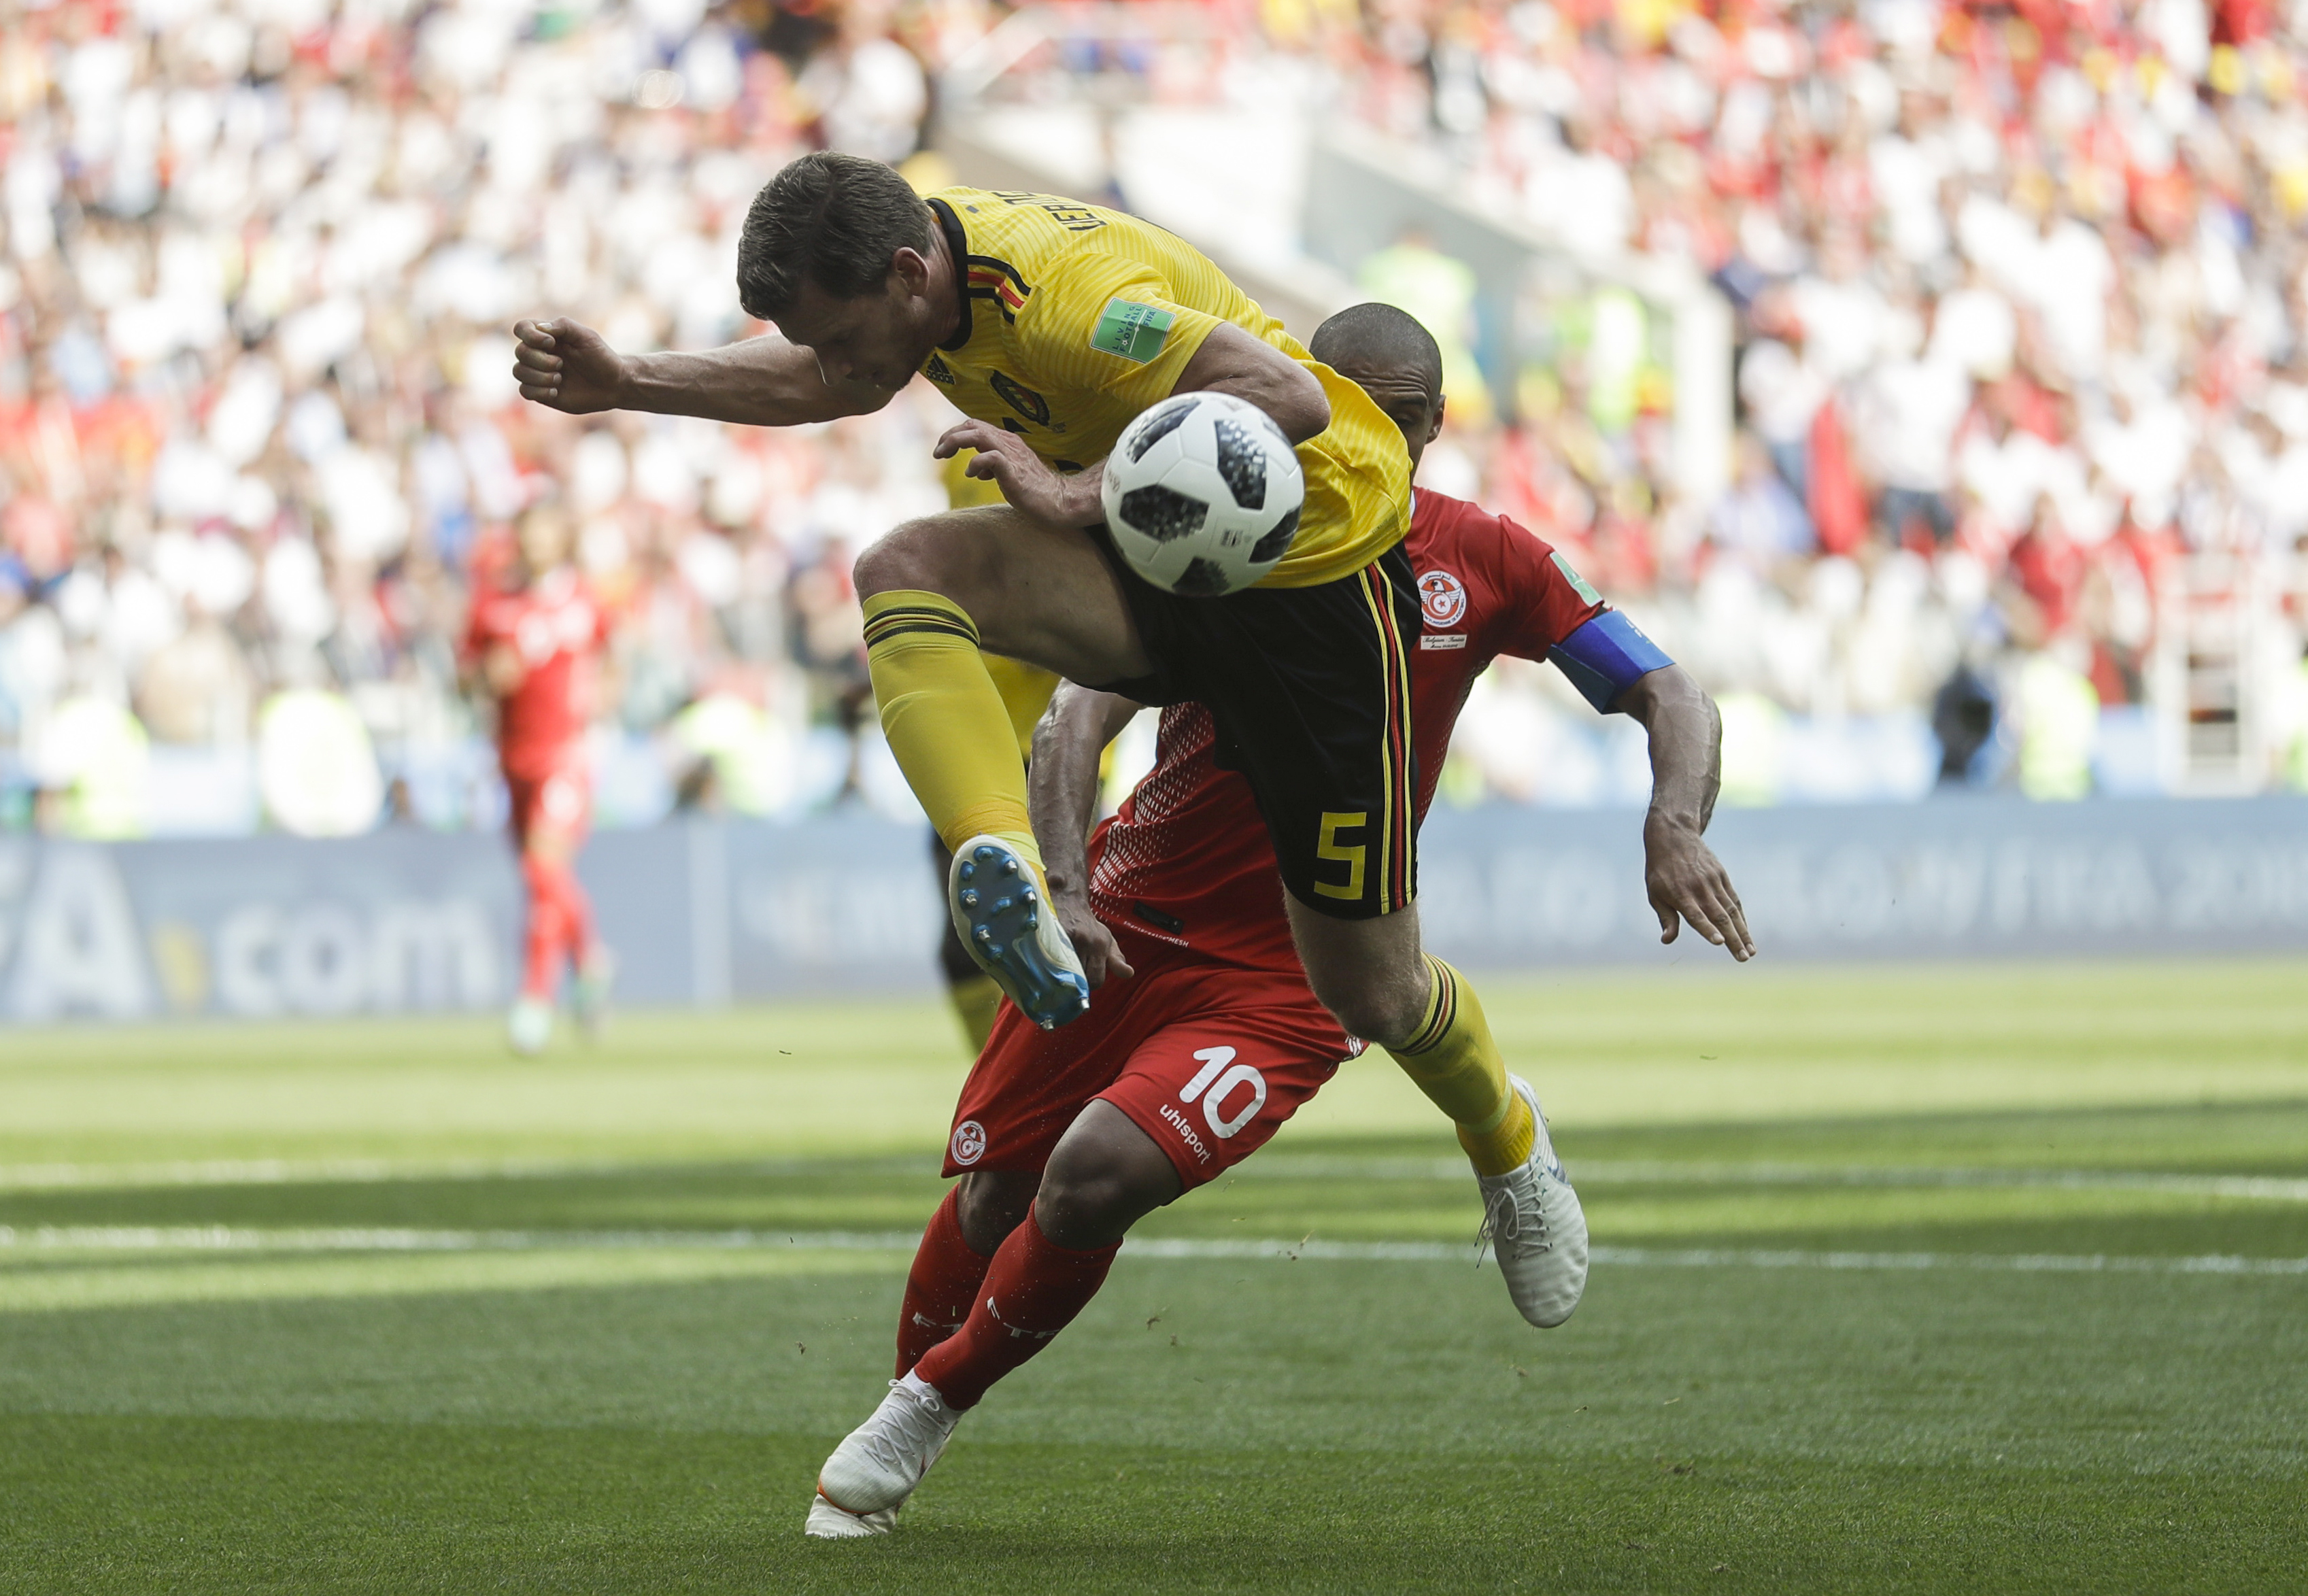 <div class='meta'><div class='origin-logo' data-origin='none'></div><span class='caption-text' data-credit='Matthias Schrader/AP Photo'>Belgium's Jan Vertonghen, top, and Tunisia's Wahbi Khazri challenge for the ball during the group G match in the Spartak Stadium in Moscow, Russia, Saturday, June 23, 2018.</span></div>